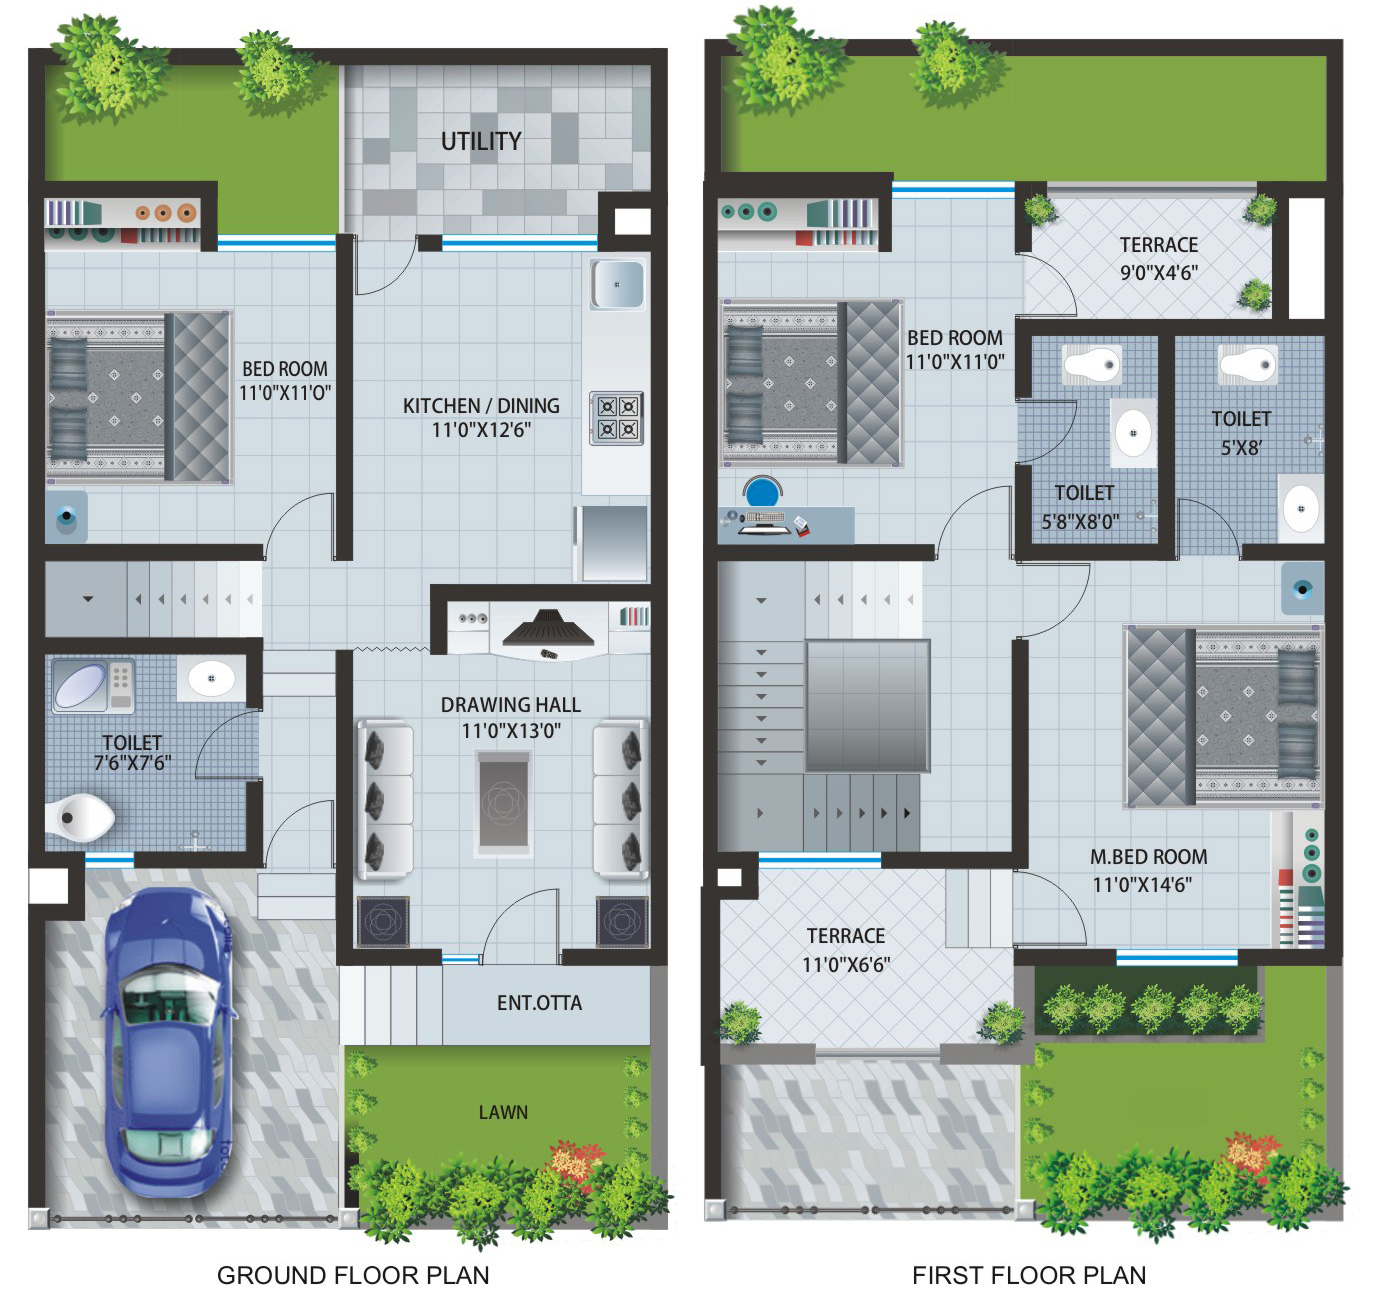 row house layout plan patel pride aurangabad - Houses Plans